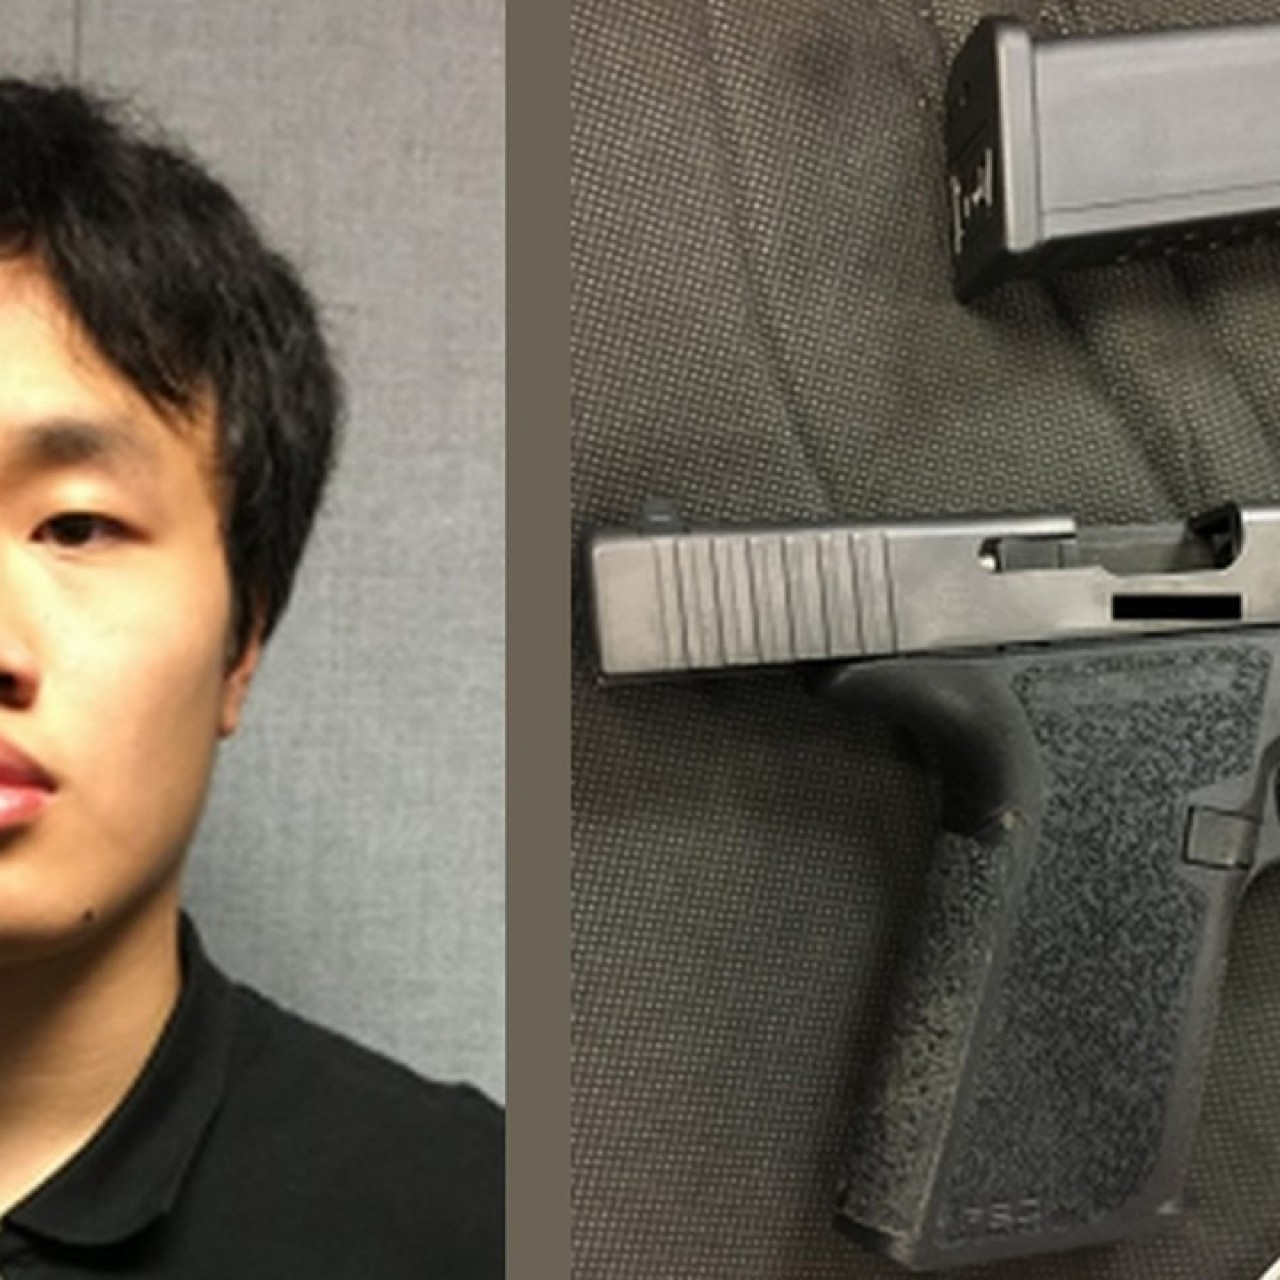 AR-15 rifle and shotgun found in home of star student Alwin